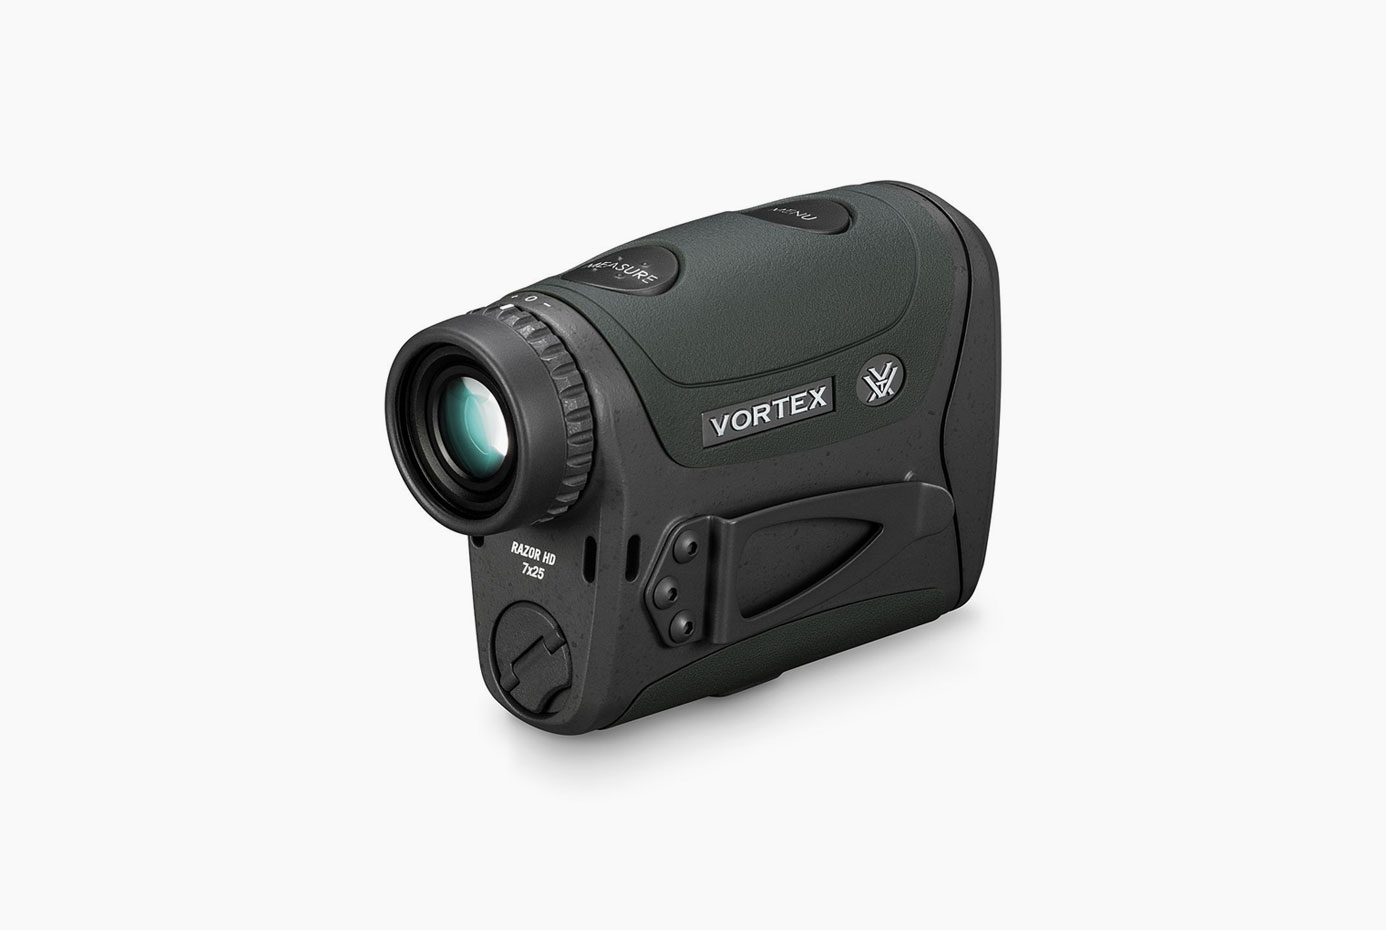 Vortex RAZOR® HD 4000 - When he only gets one shot, he better make sure it's true. The Razor HD 4000 is at the pinnacle of rangefinder technology, optimized for crisp distance readouts and exceptional glass quality that you can expect from Vortex.